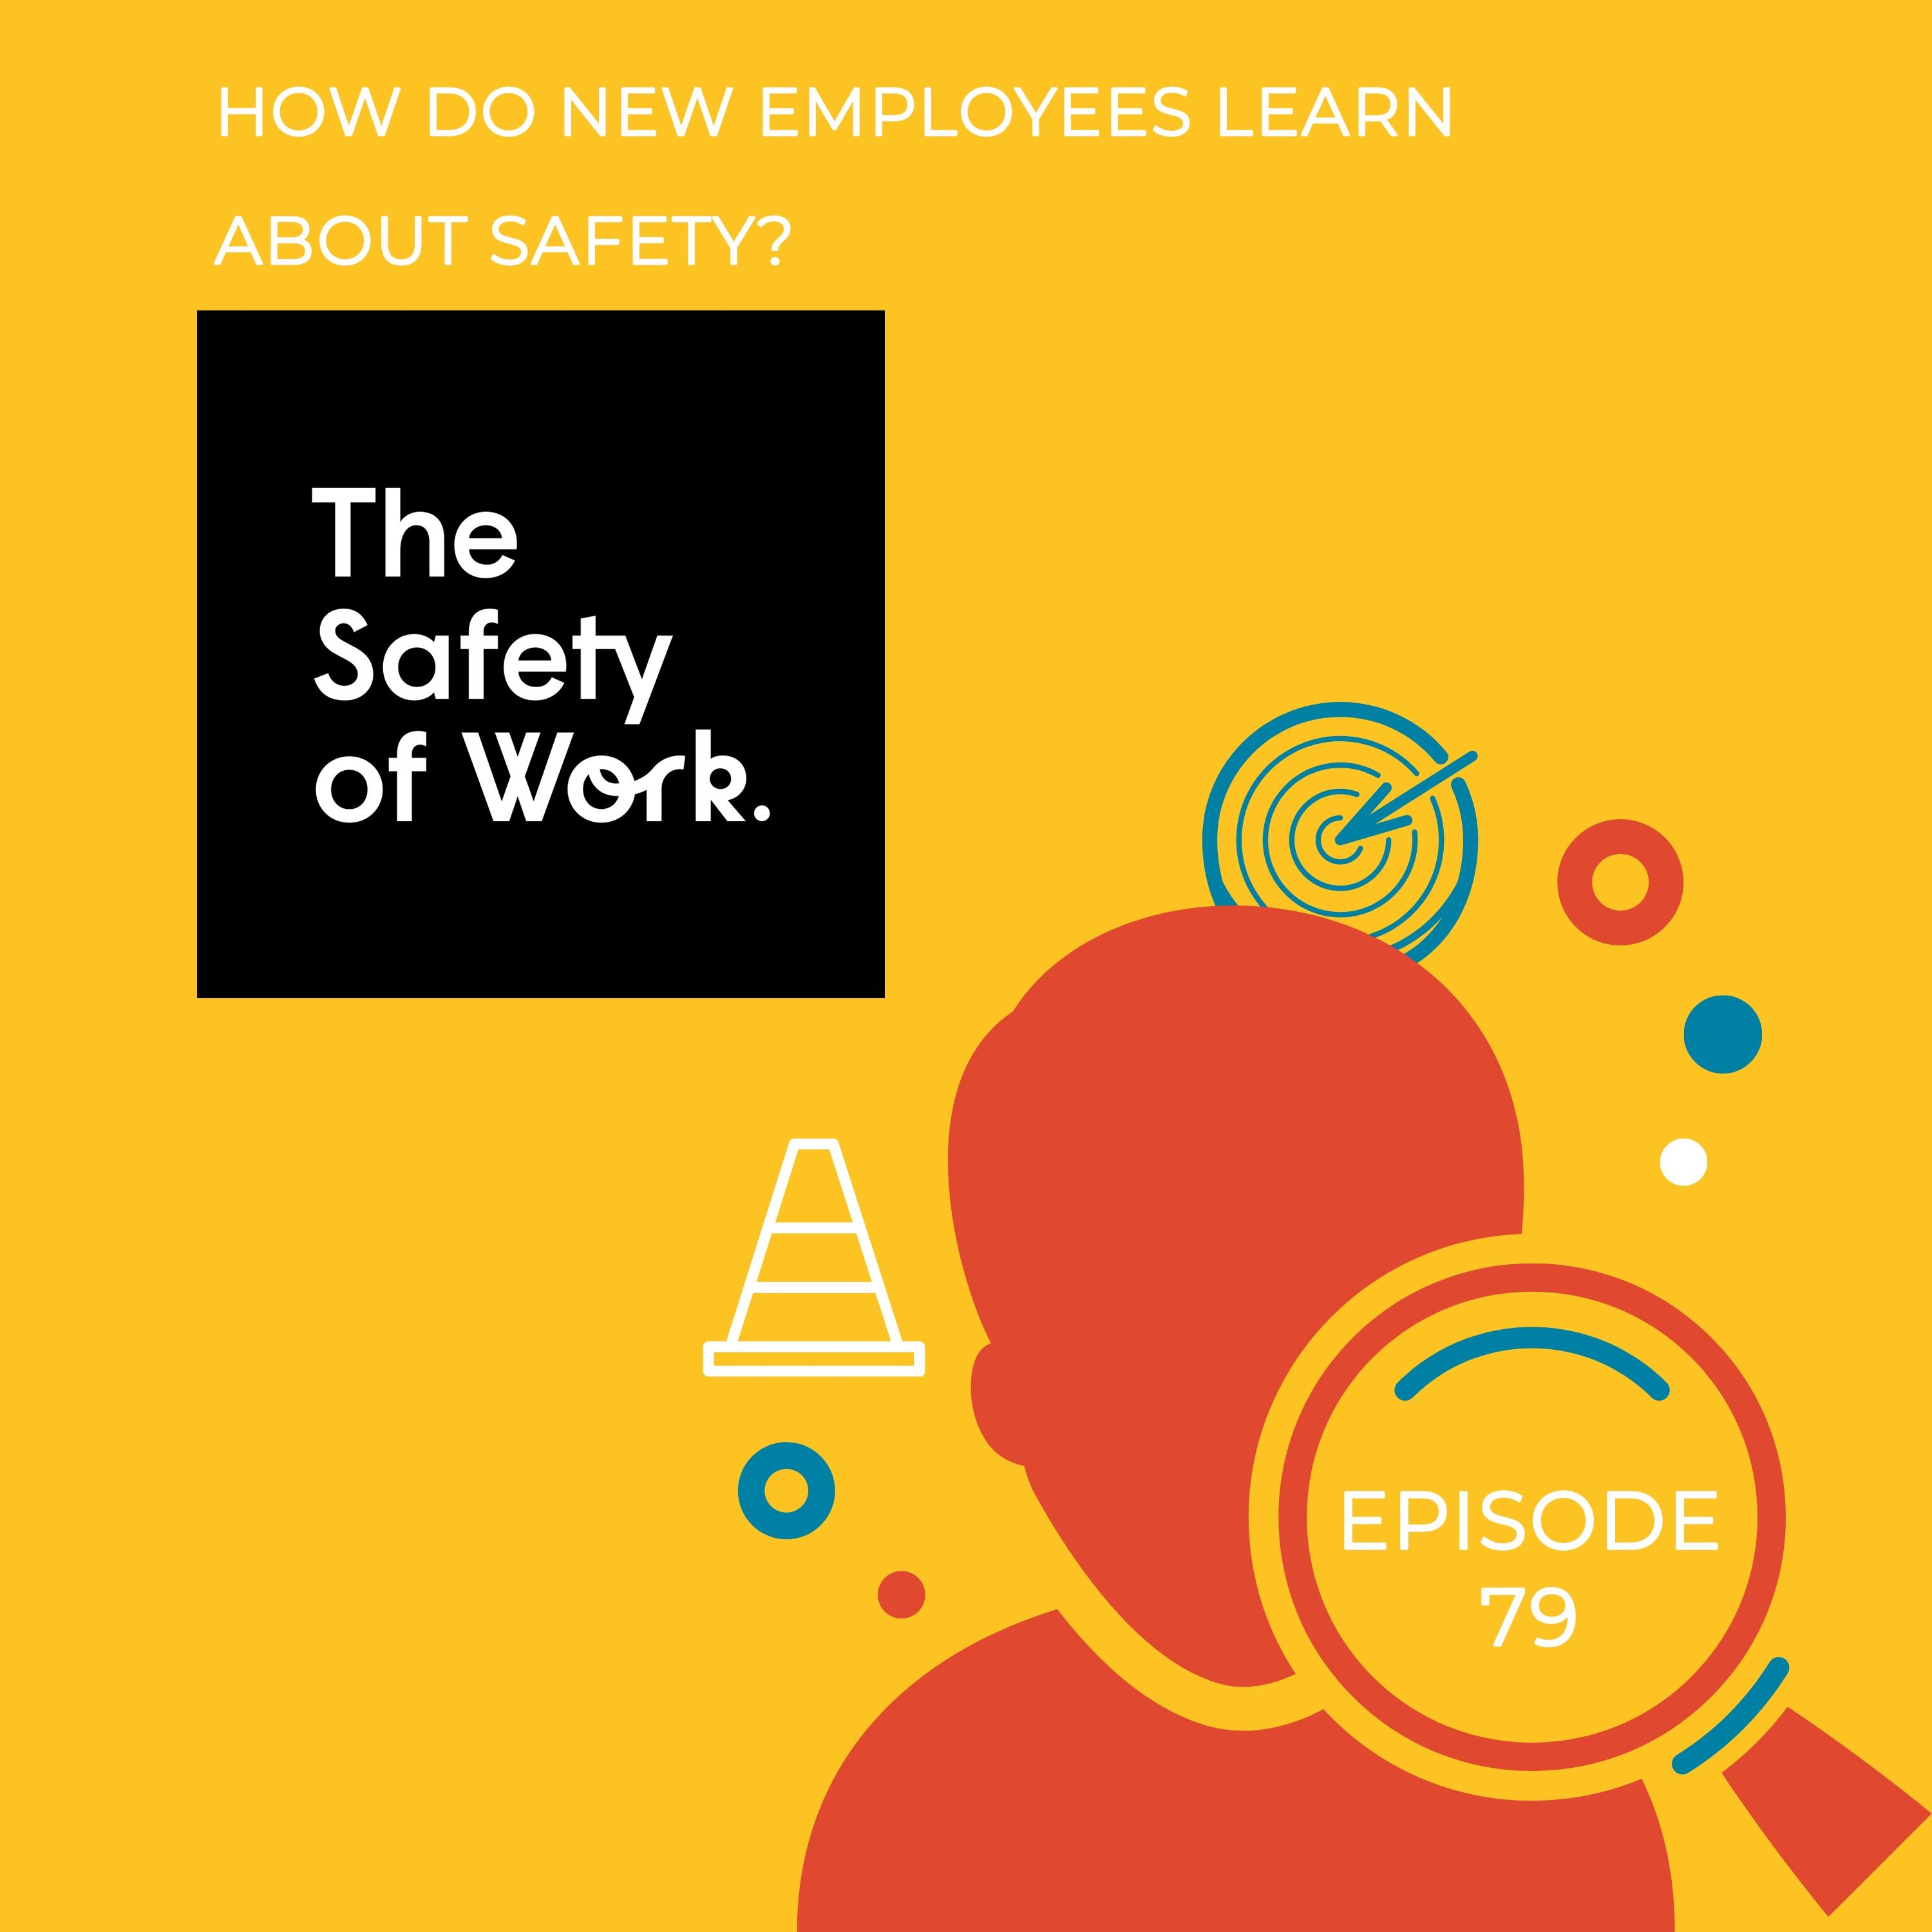 Ep. 79 How do new employees learn about safety?